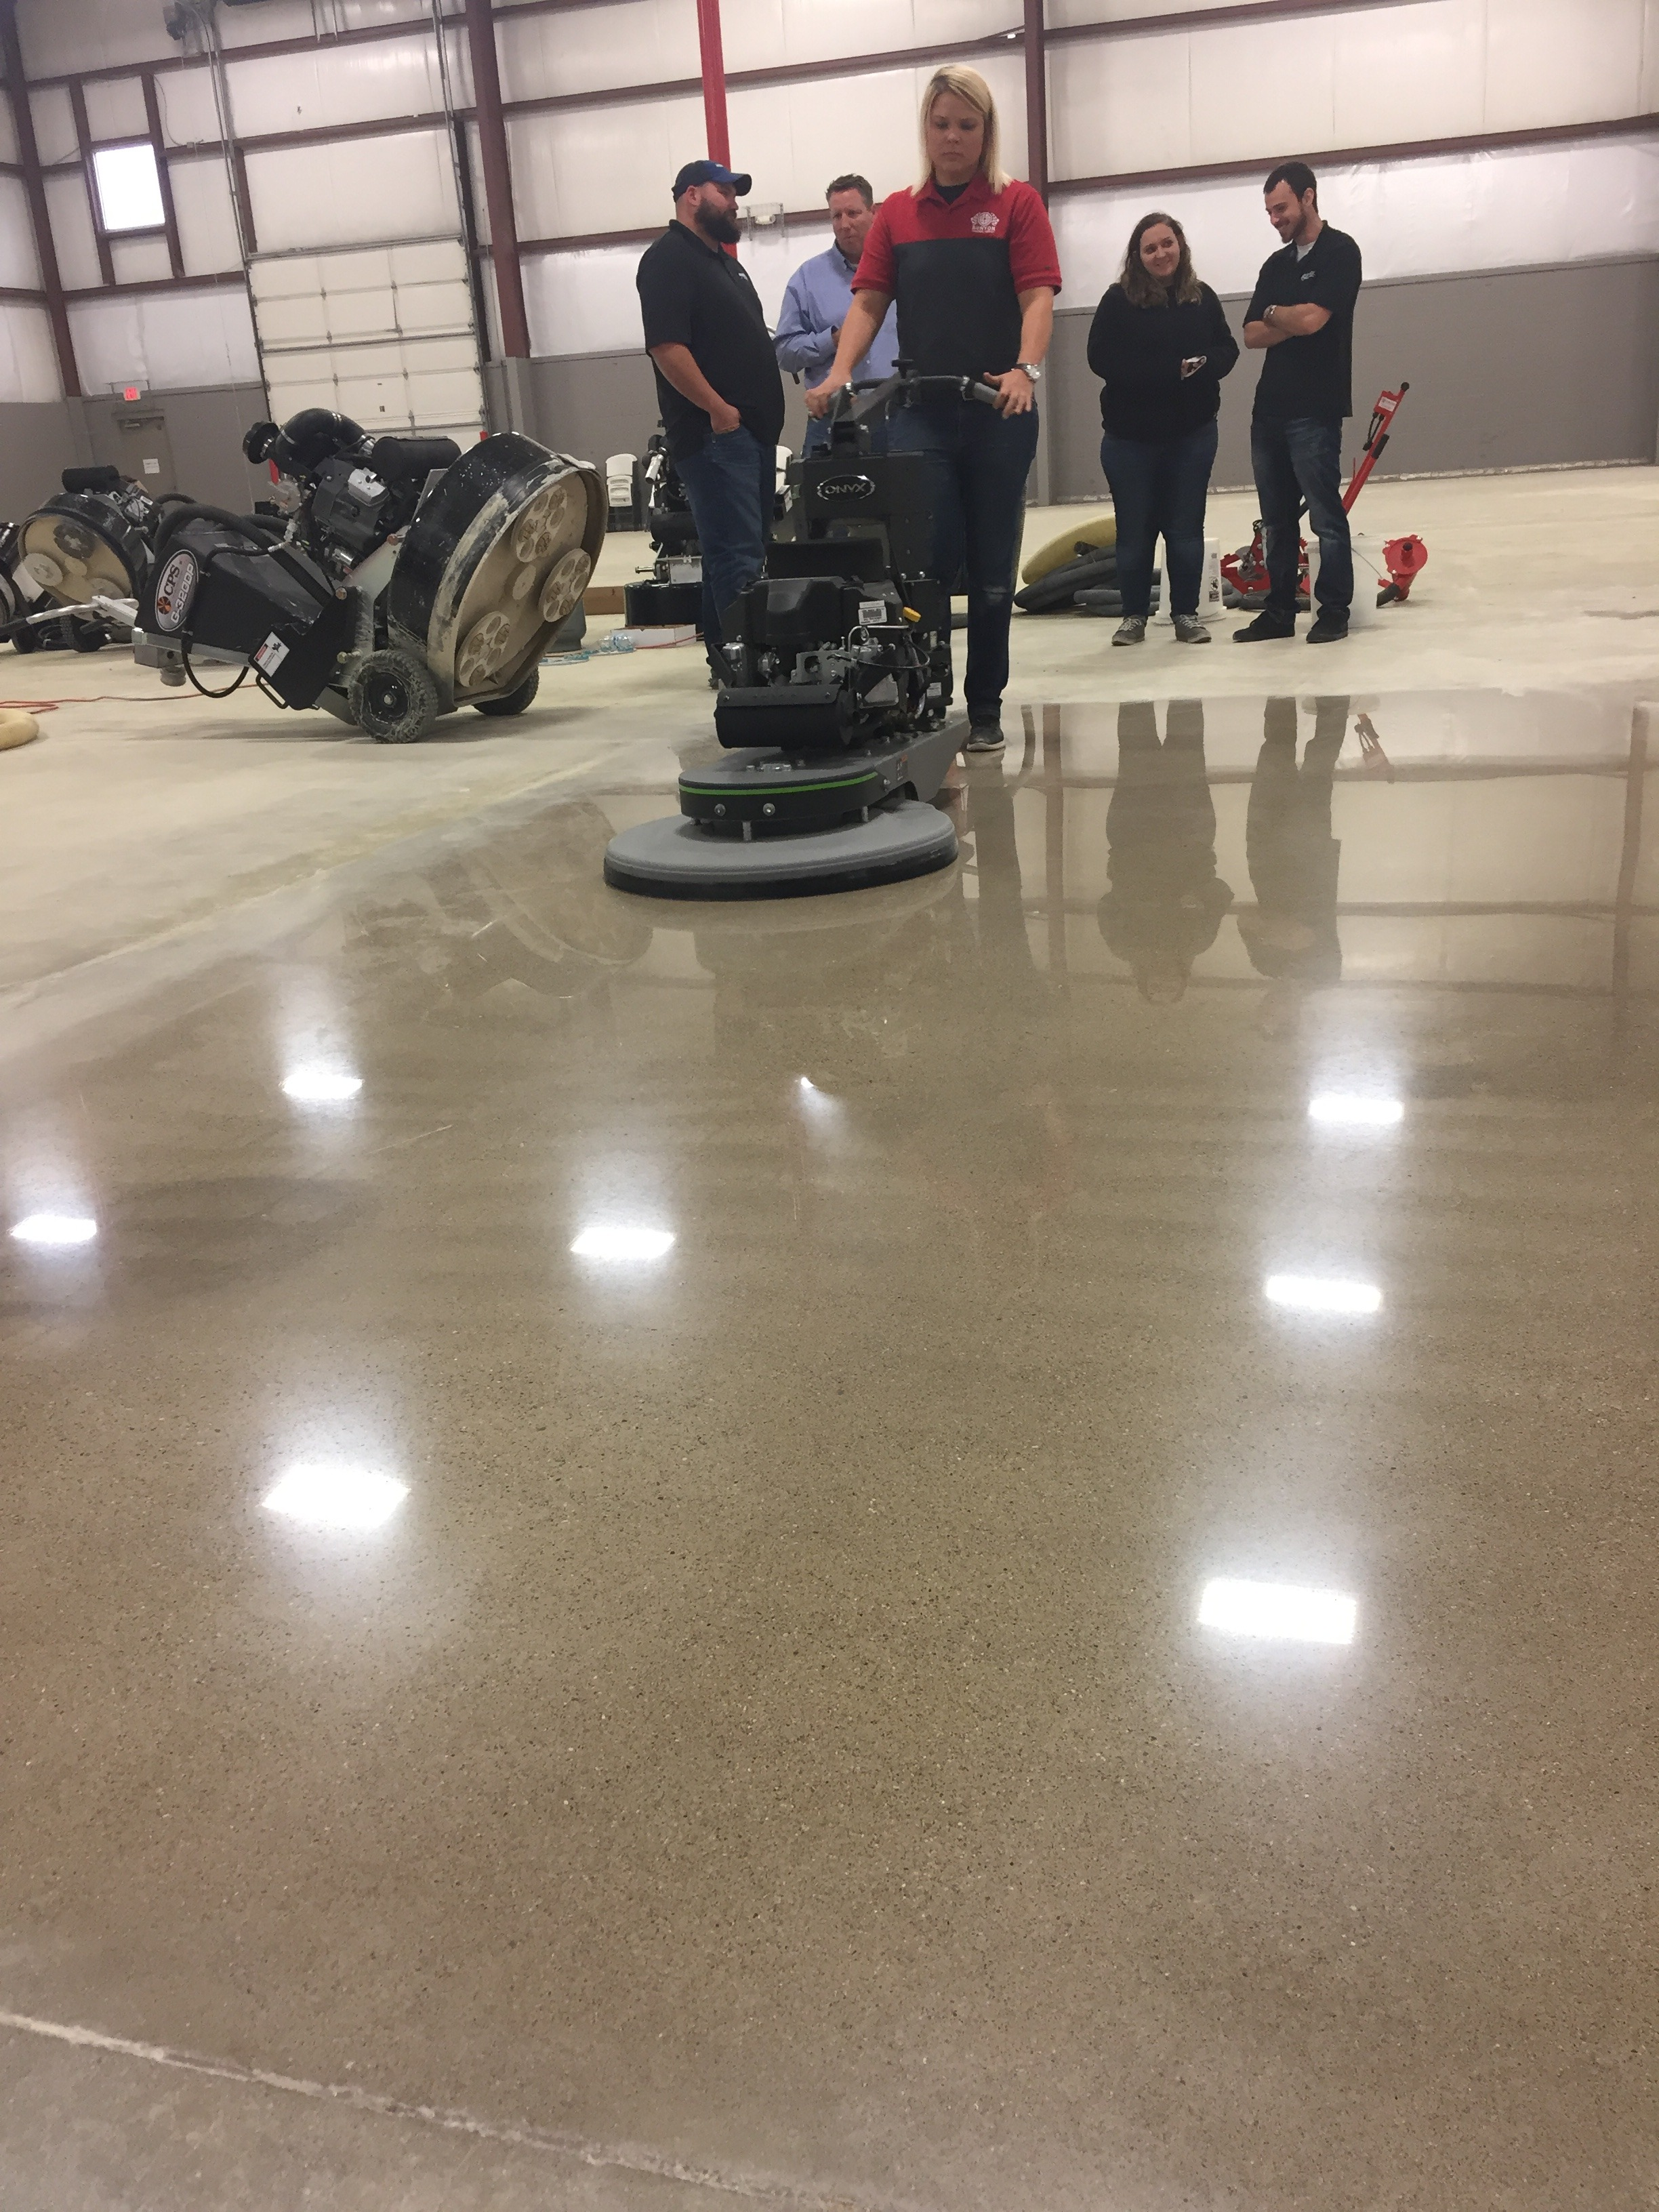 An Overview of Diamond Impregnated Pads for Polished Concrete